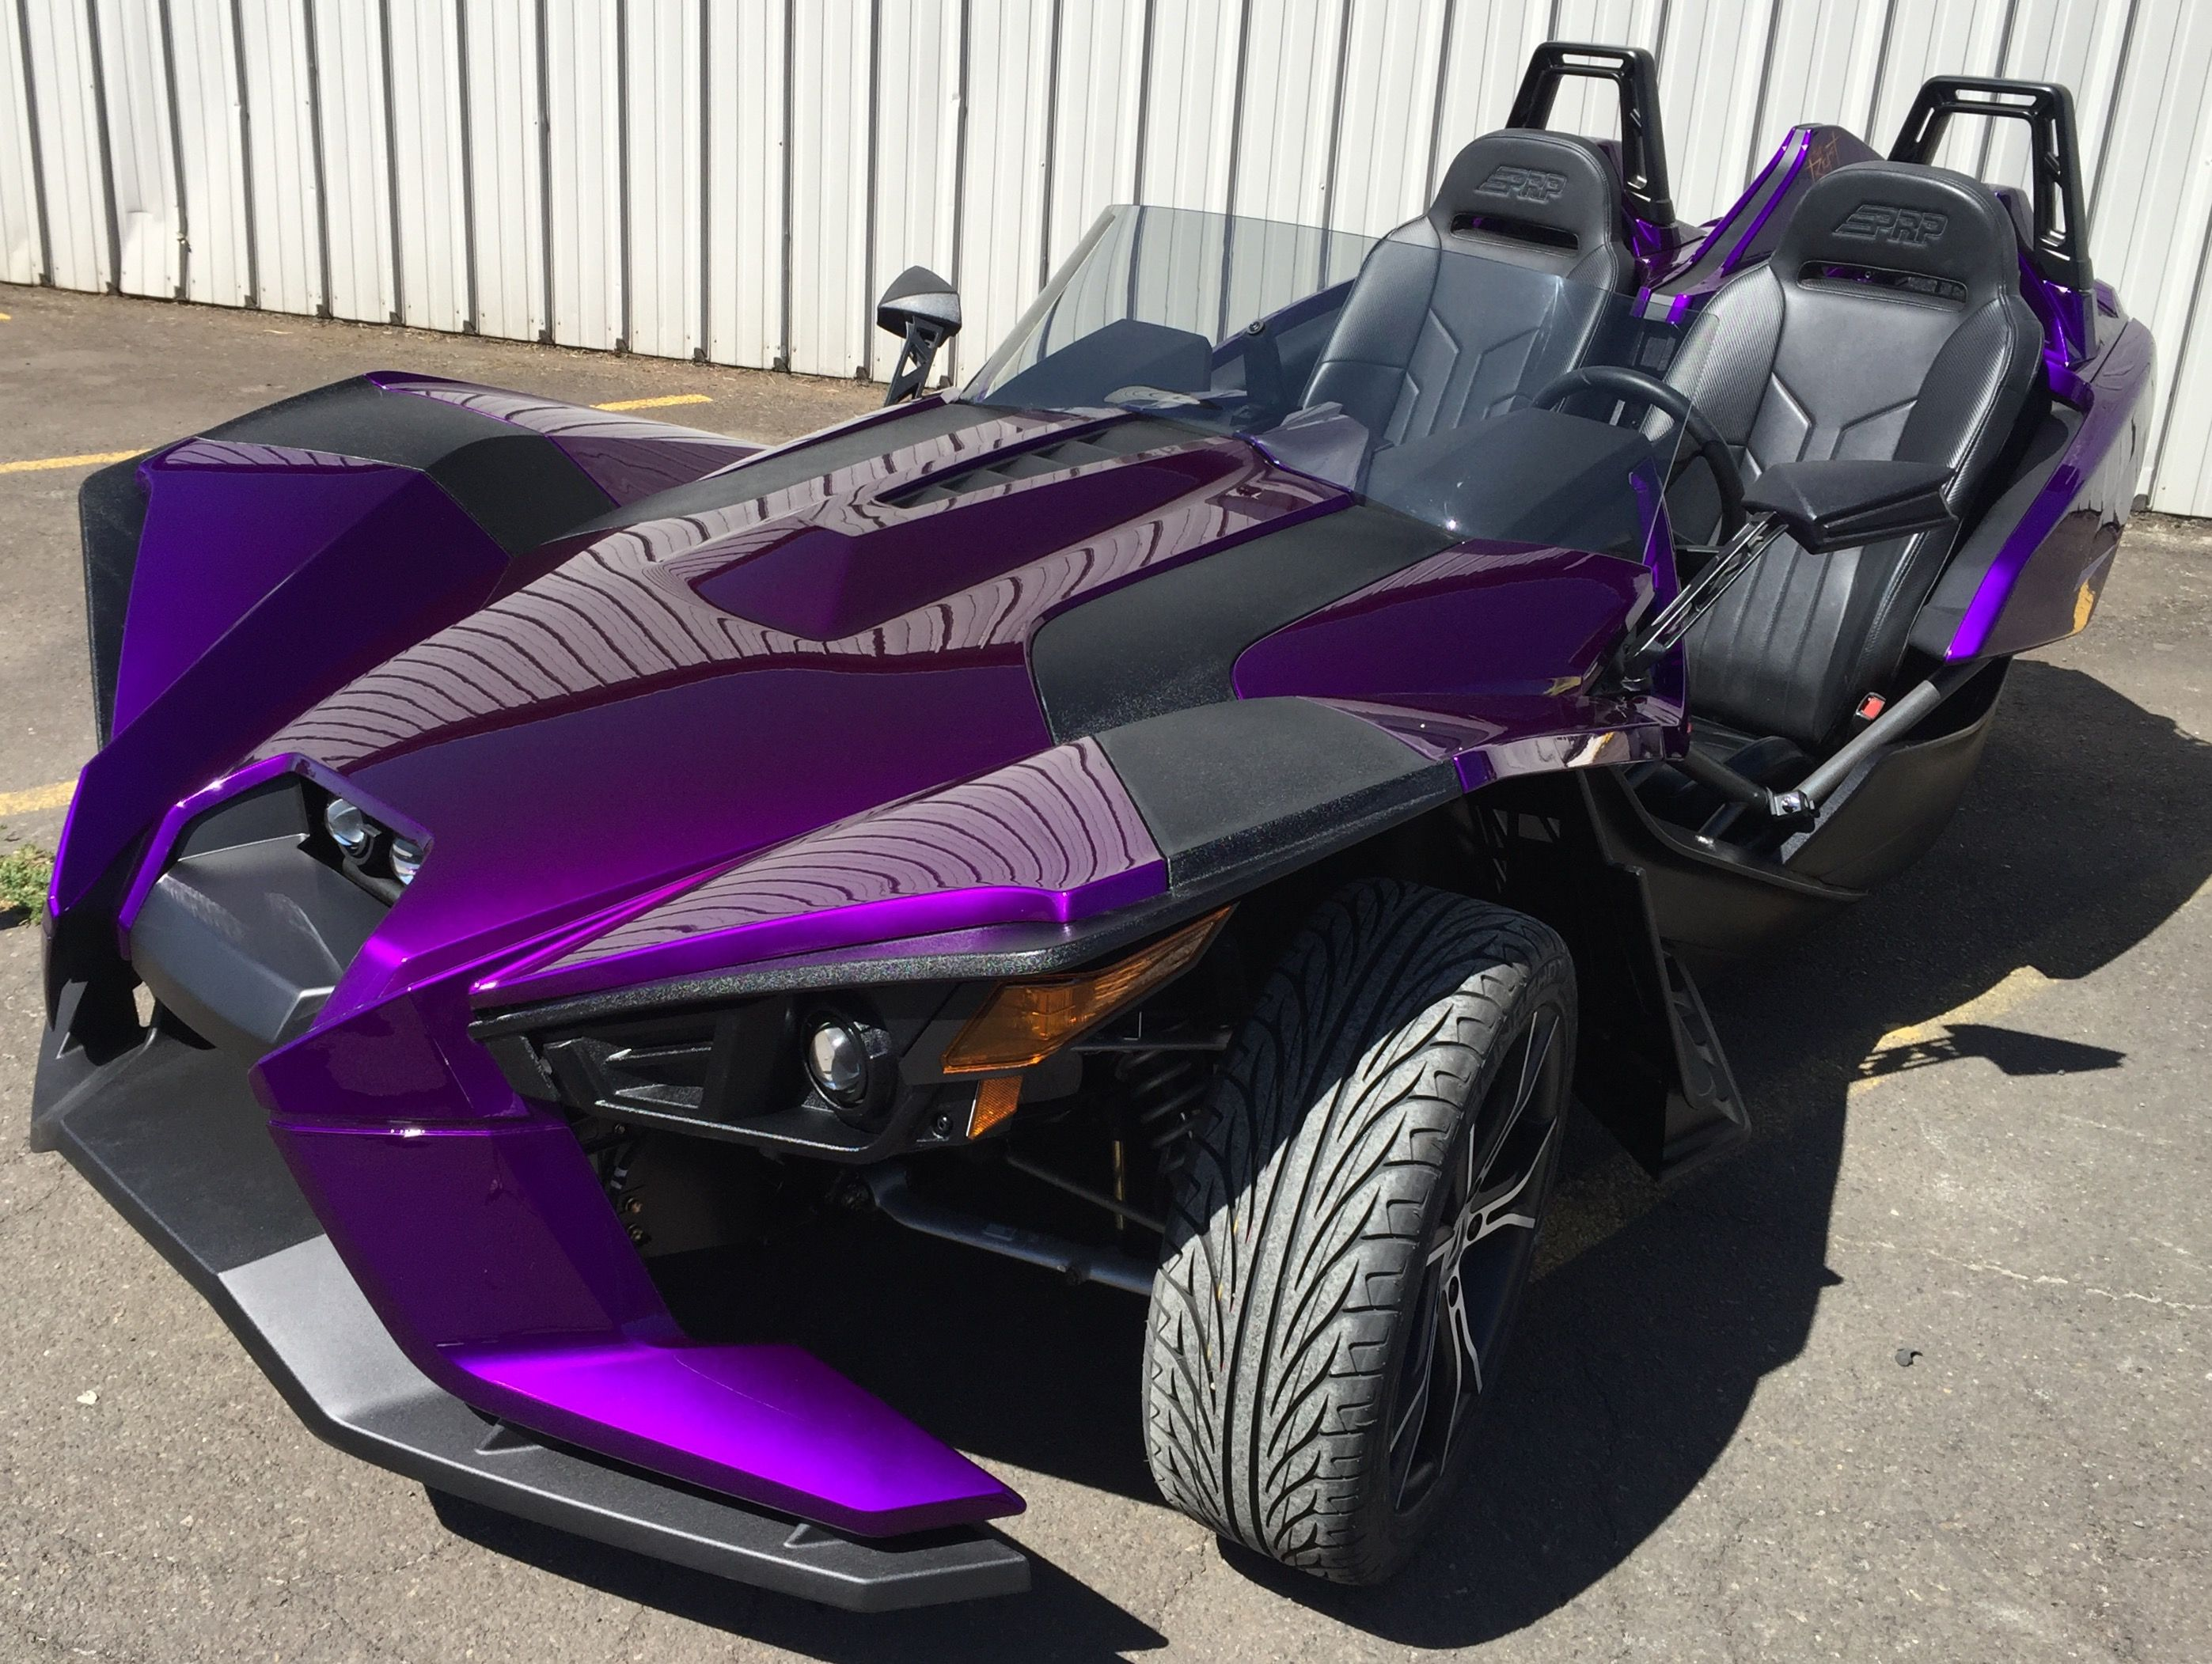 Custom Polaris Slingshot Pictures Yahoo Search Results Yahoo